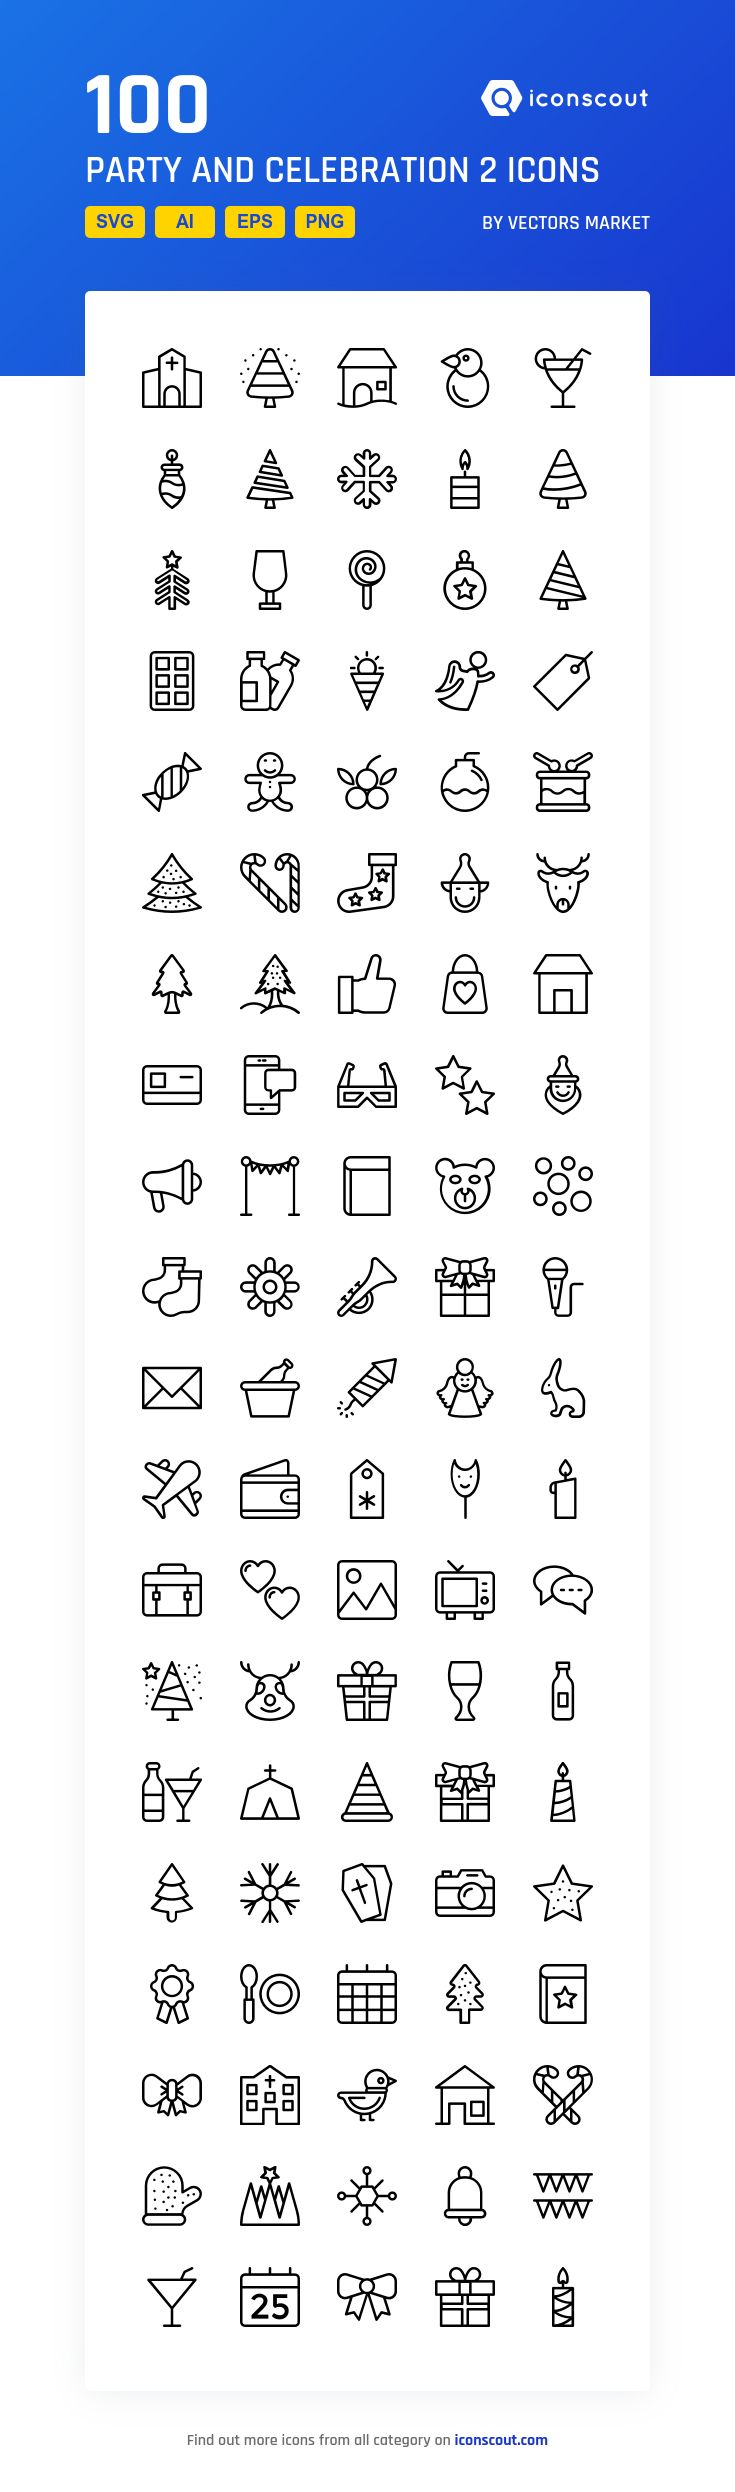 Party And Celebration 2  Icon Pack - 100 Line Icons